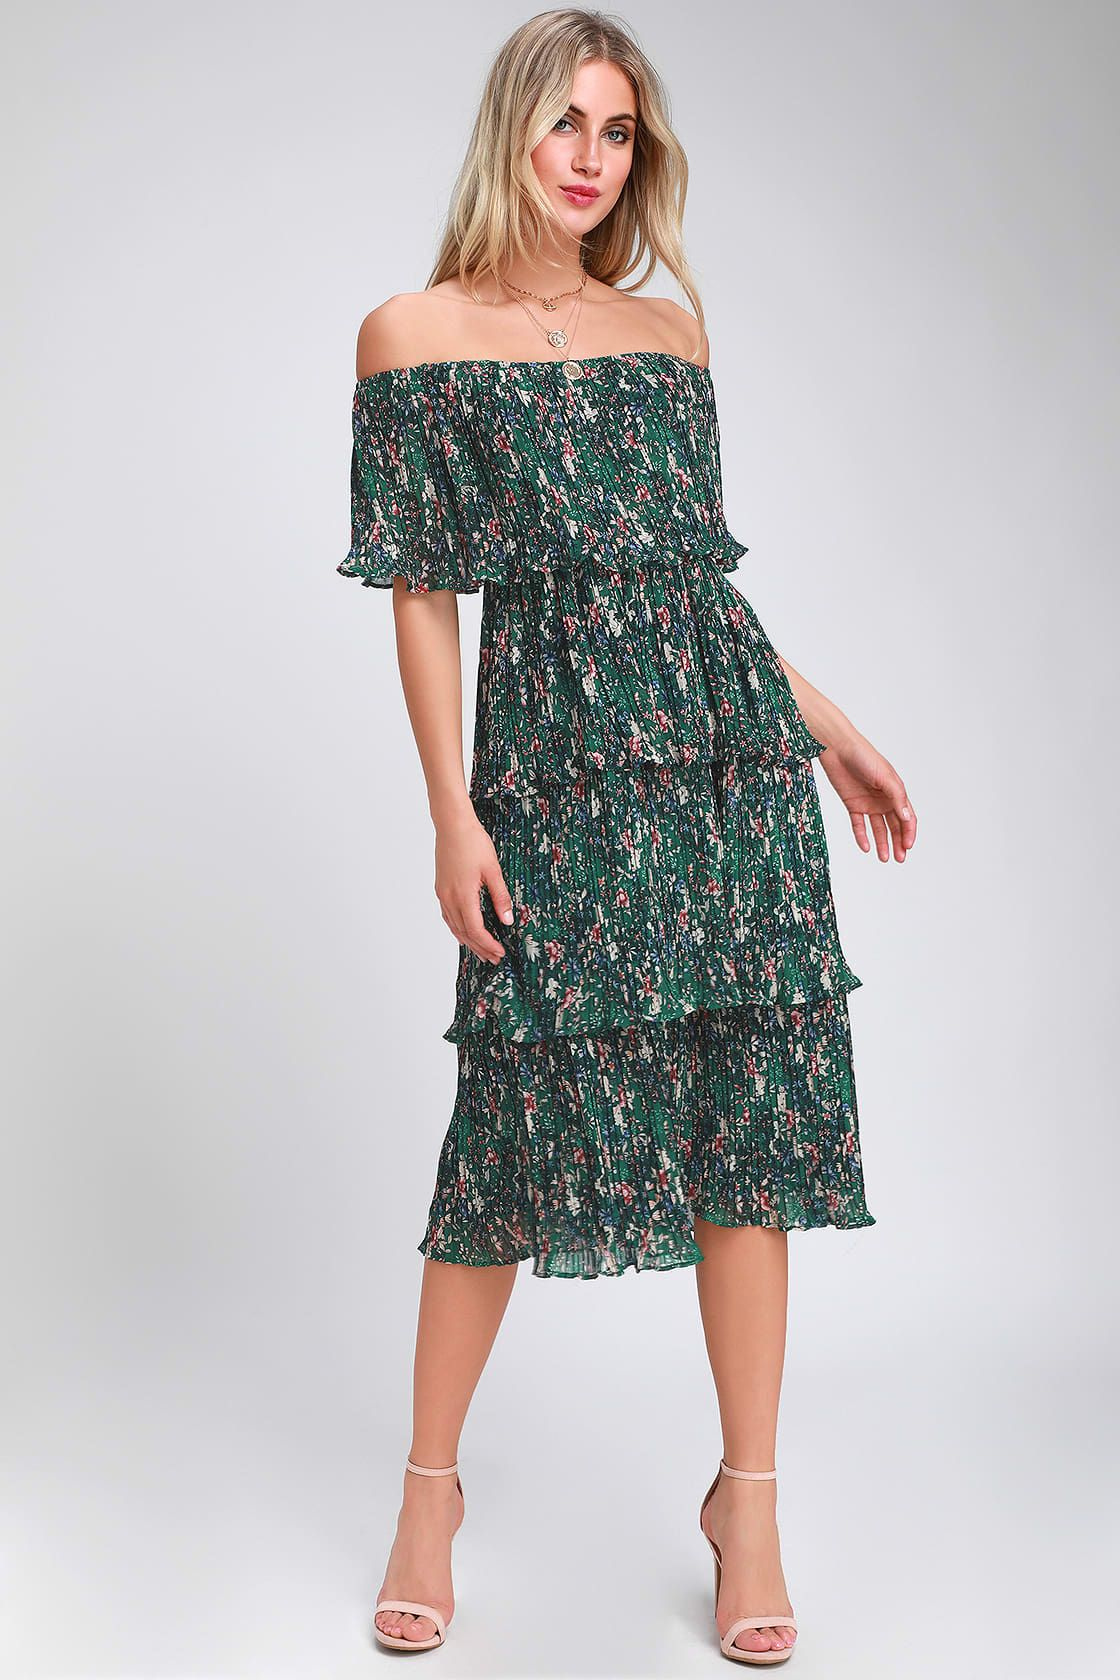 ad3c0f5539 Lulus | Gala Ready Green Floral Print Off-the-Shoulder Ruffle Midi ...